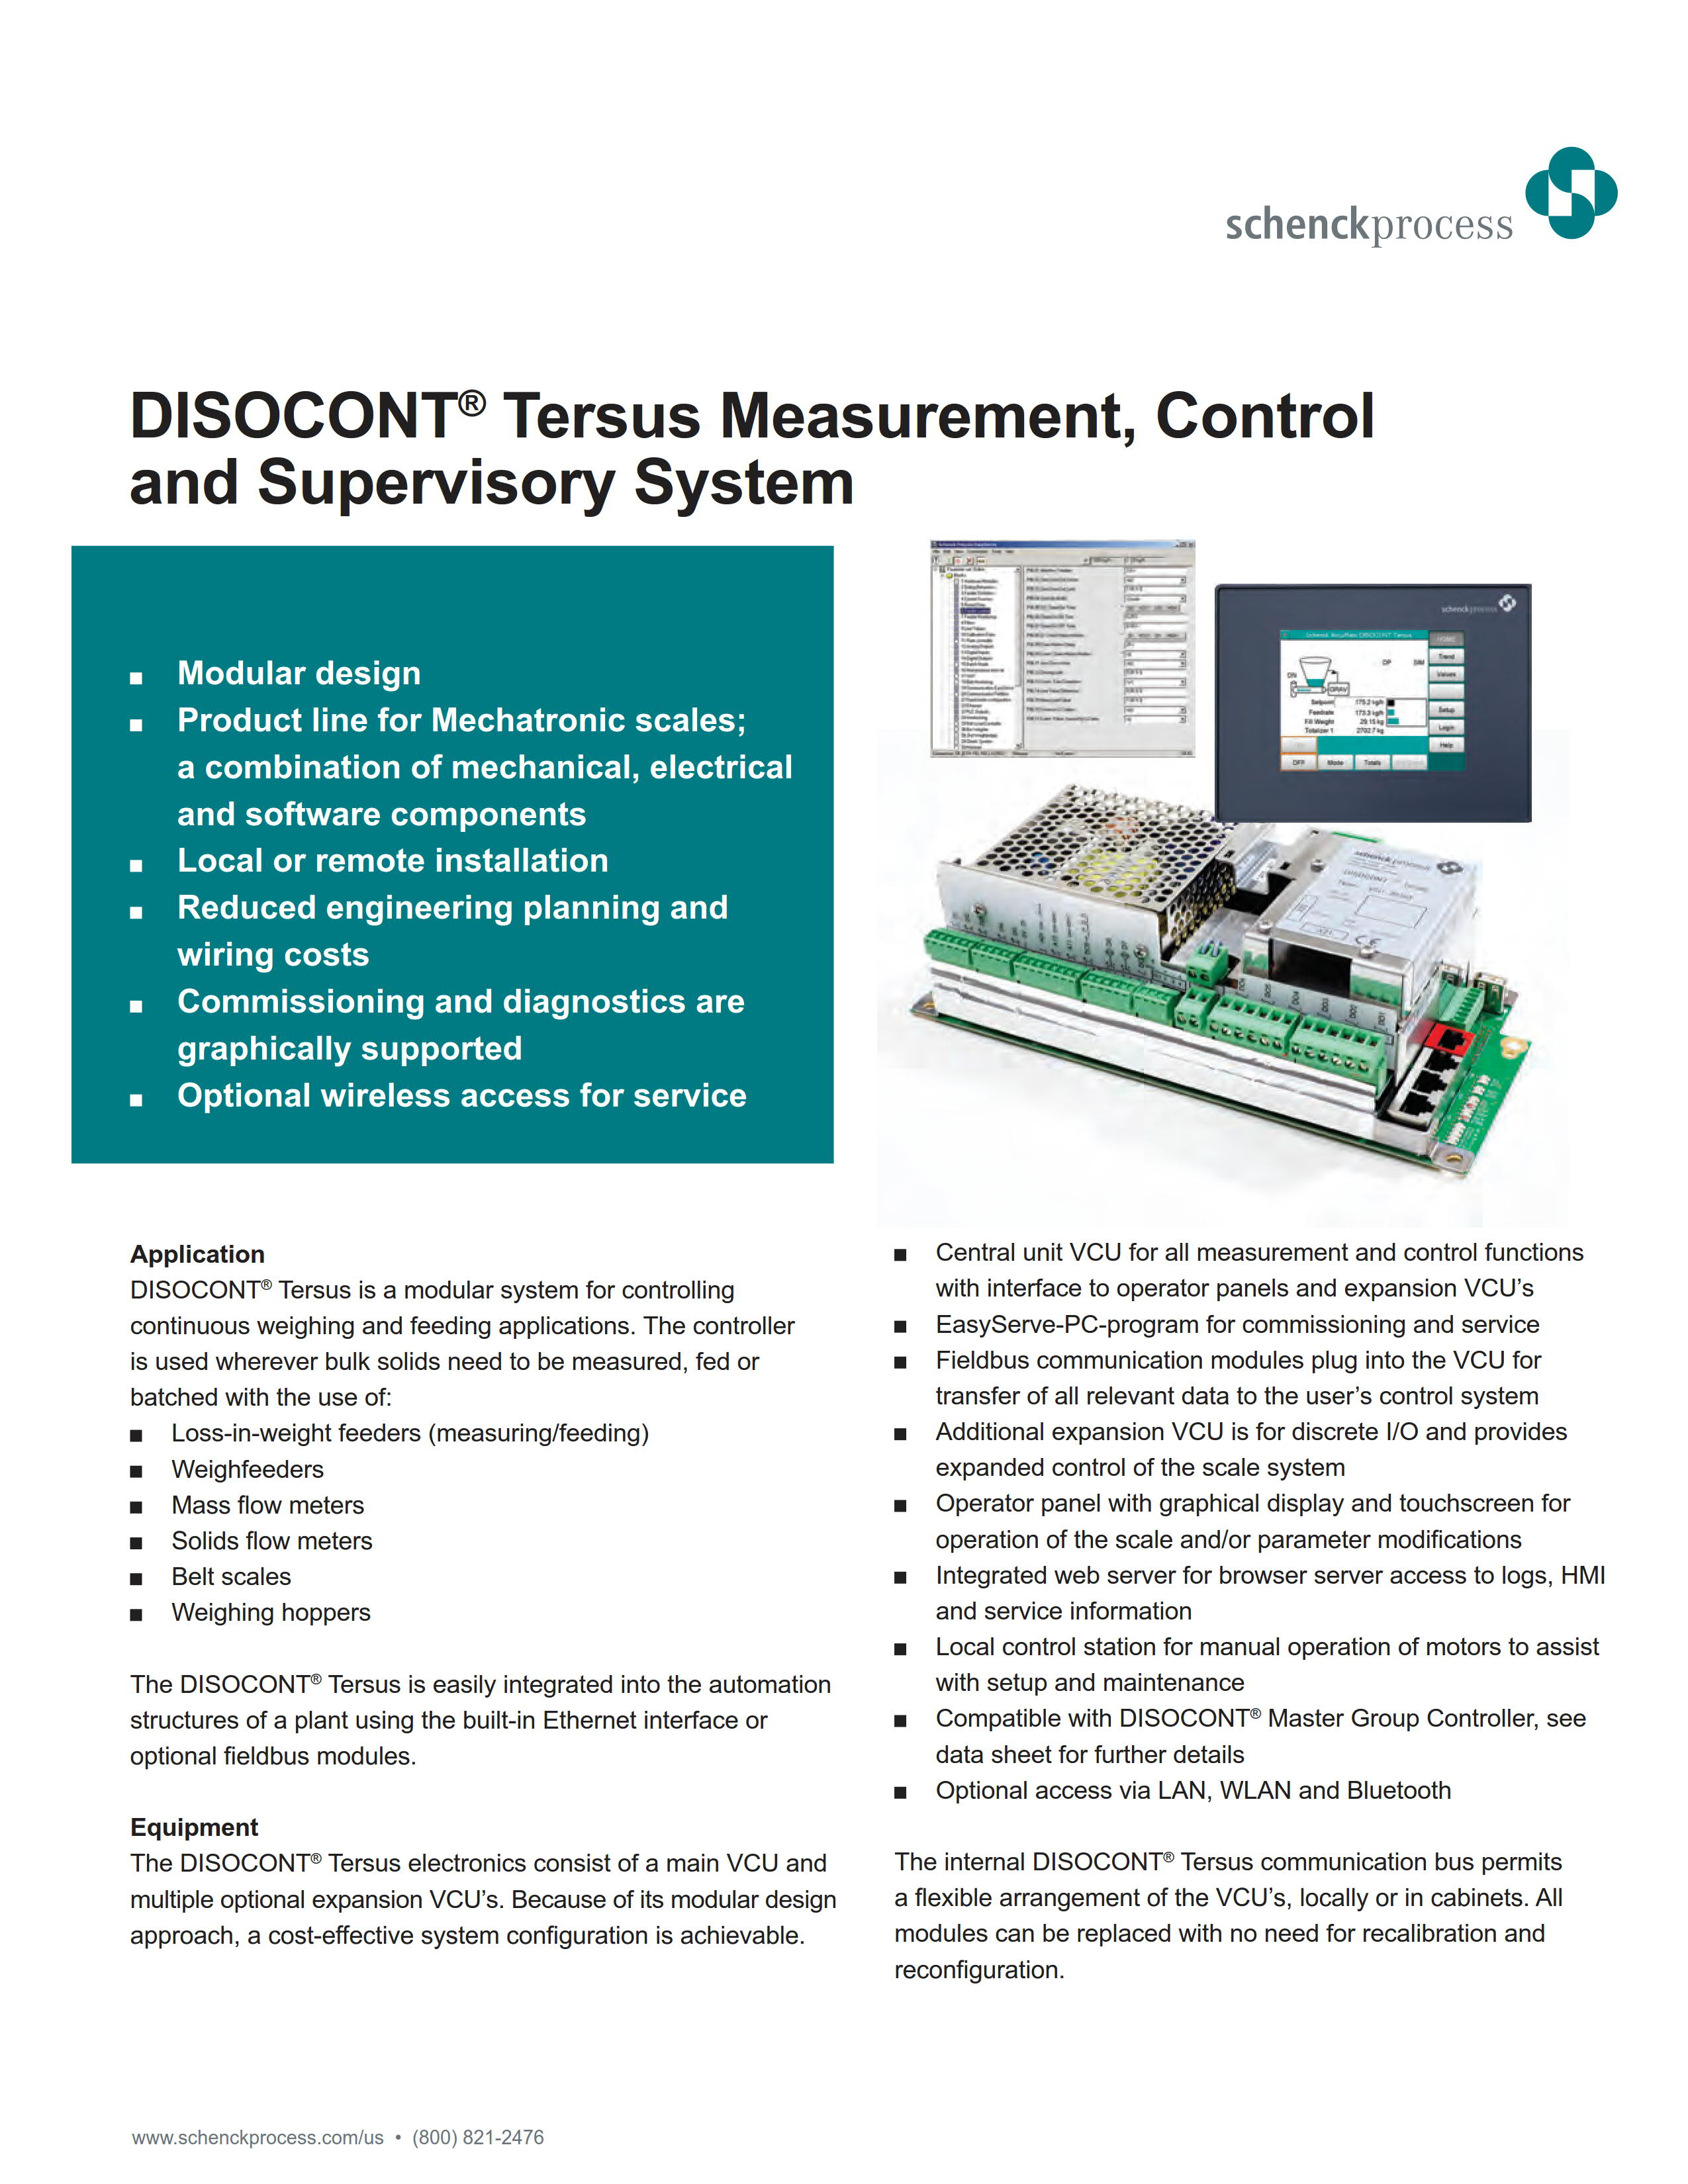 DISOCONT Tersus Measurement, Control and Supervisory System